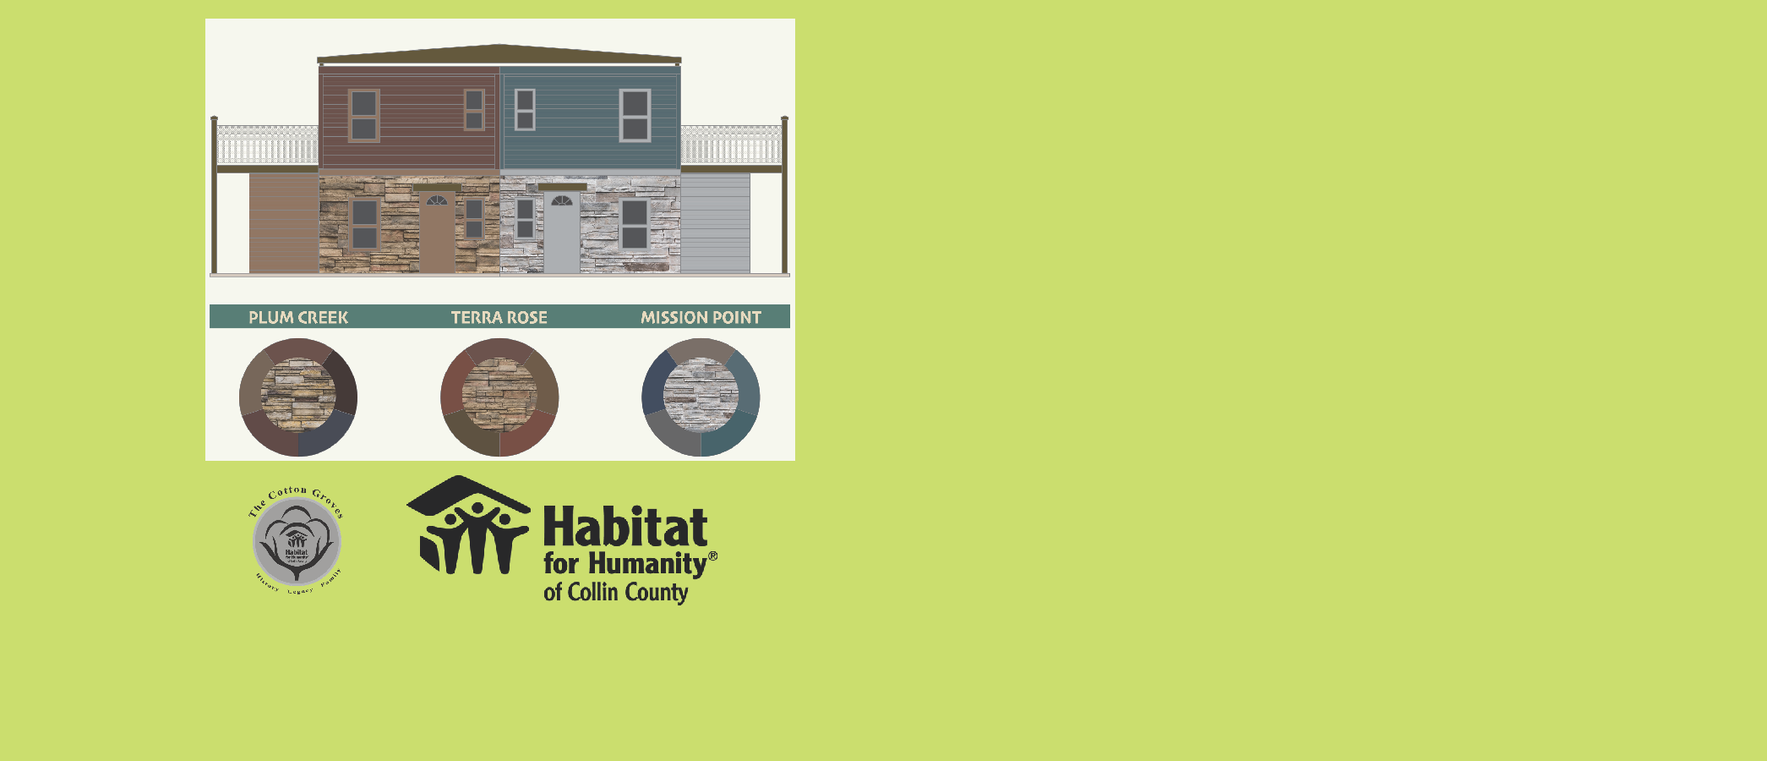 Join us as we bring people together to build homes,communities, and hope. image